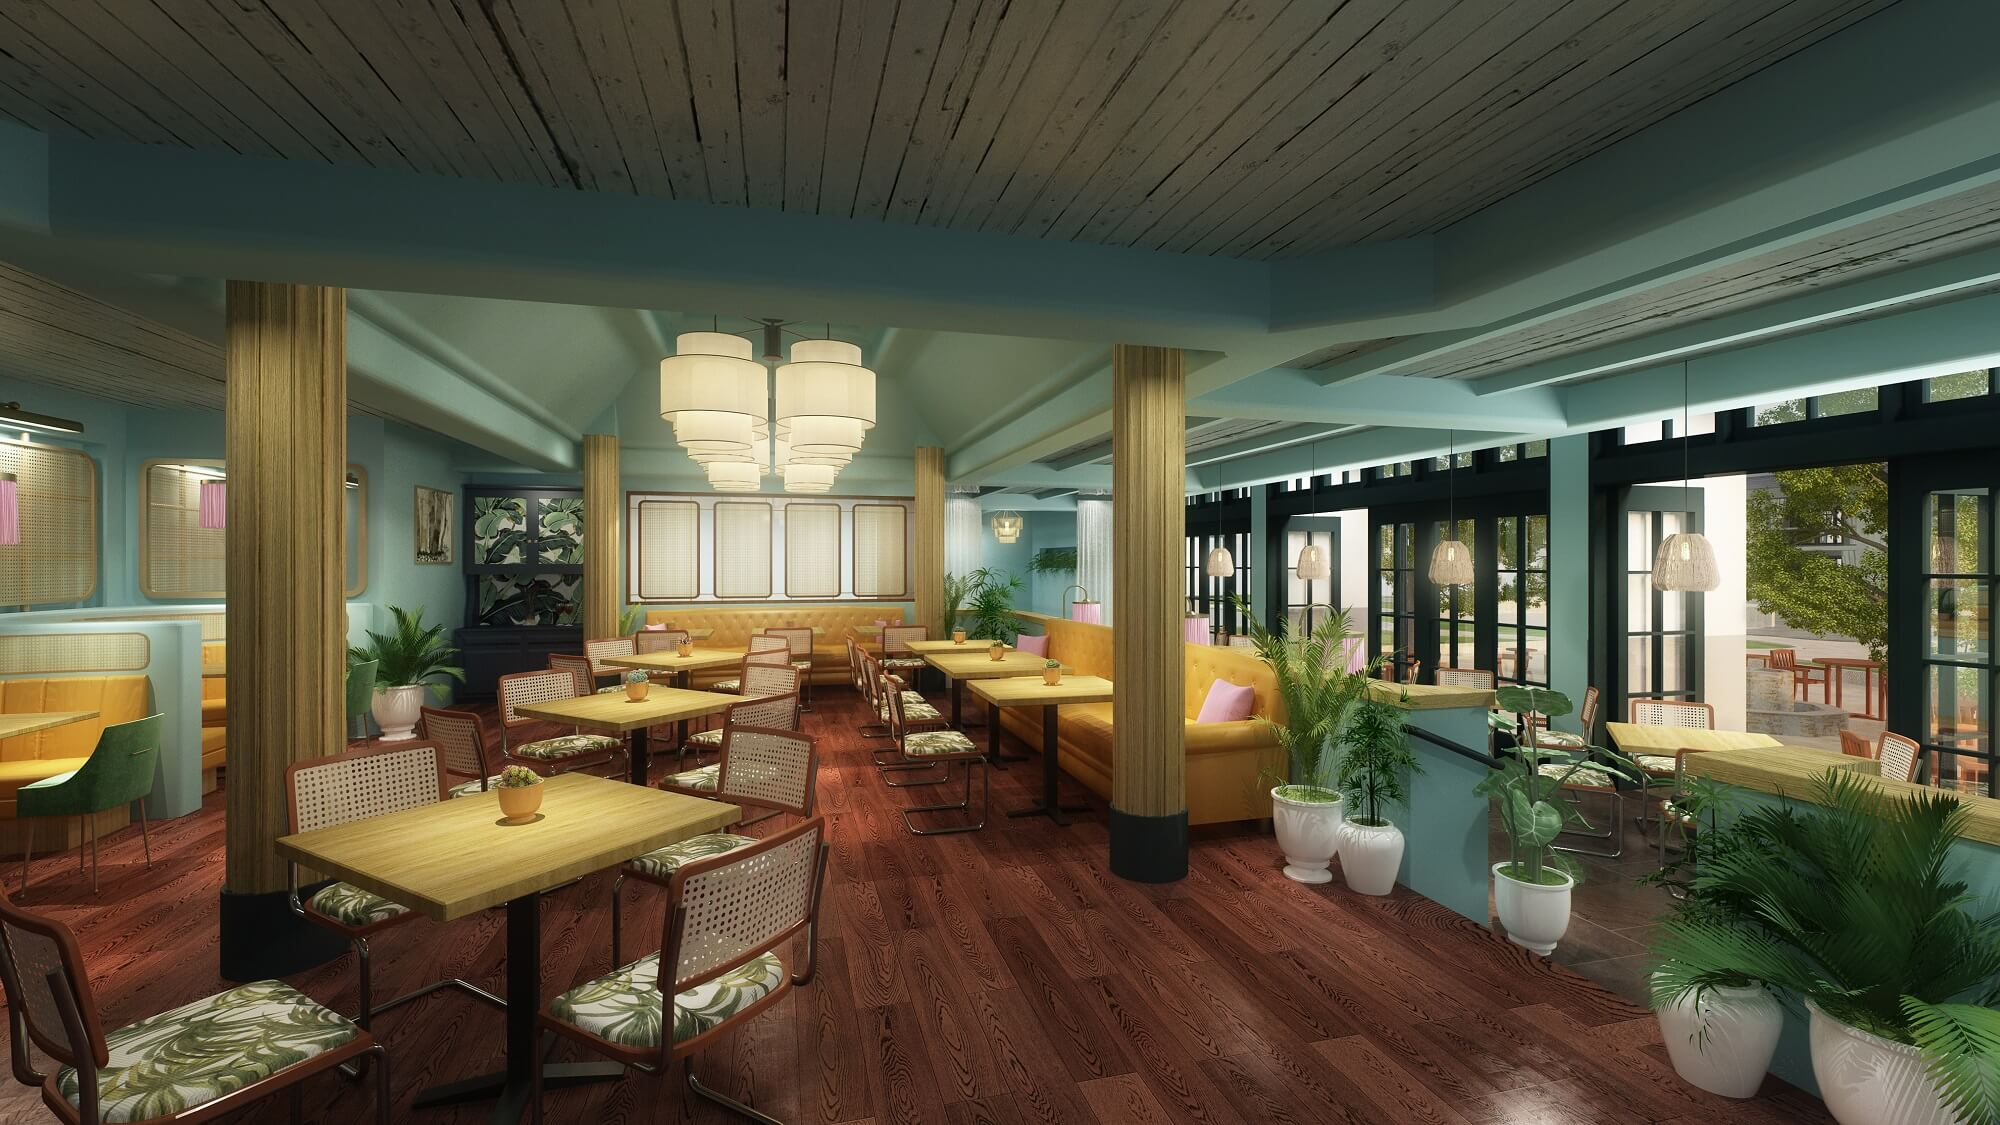 The signature lobby bar and restaurant will be completely renovated and reimagined, while maintaining an indoor-outdoor layout.